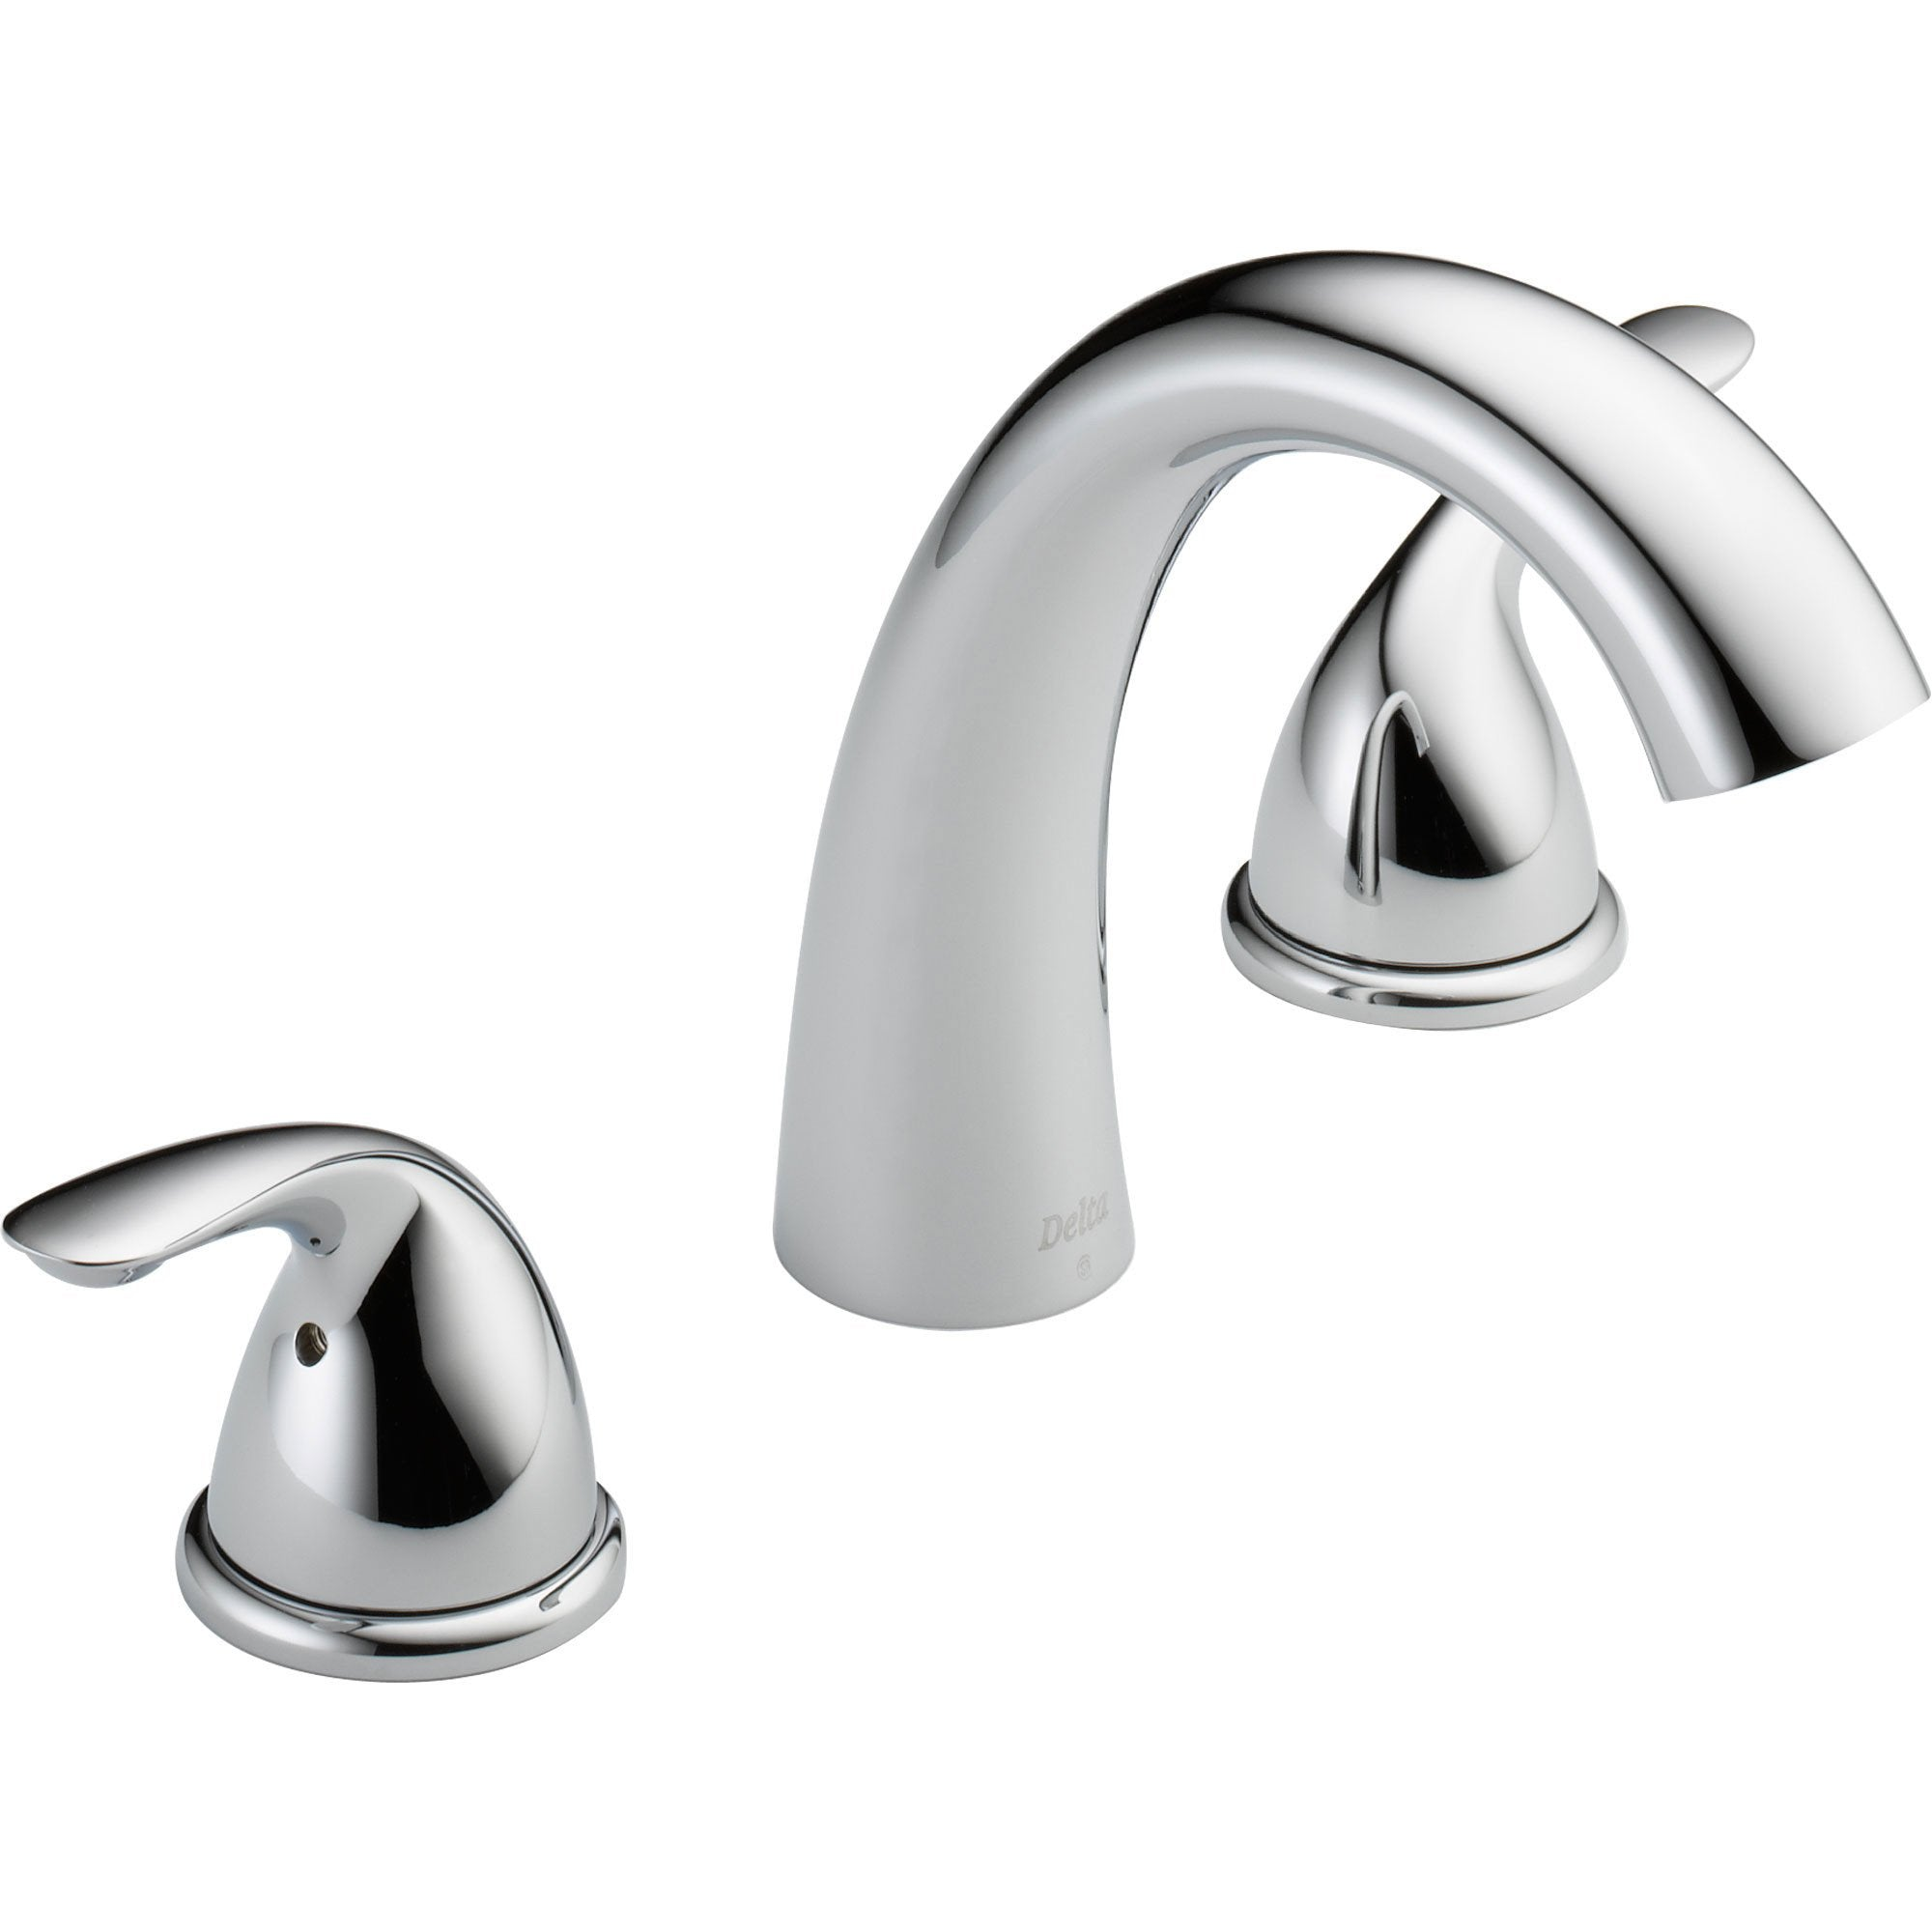 Delta Classic 2-Handle Deck Mount Roman Tub Faucet Trim Only in Chrome 550143